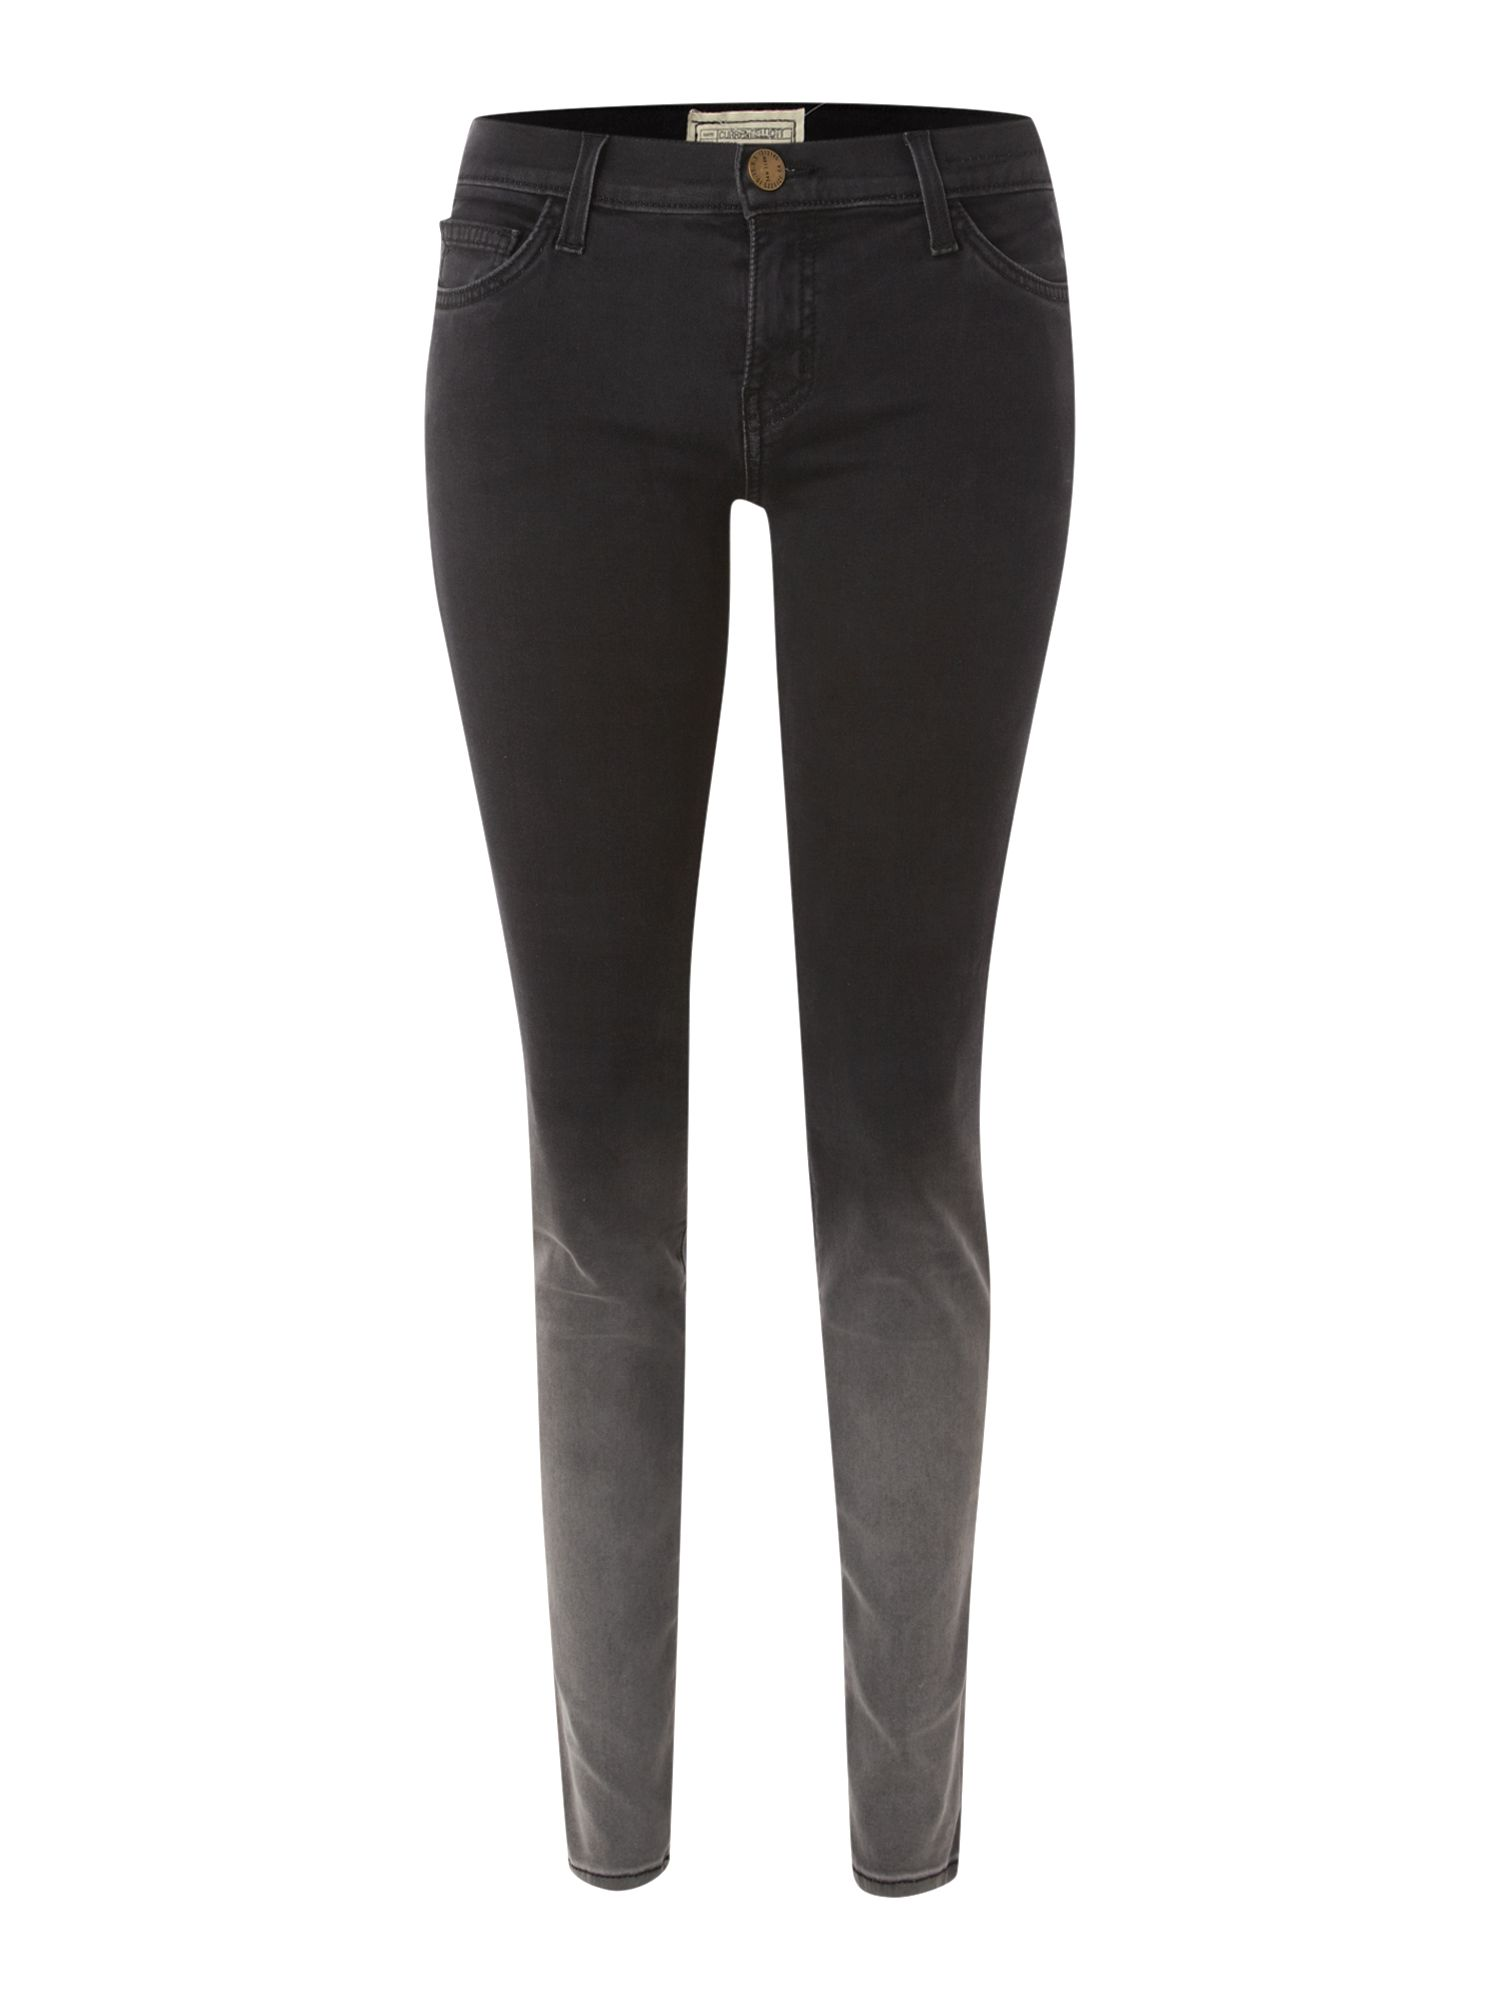 The Ankle Skinny ombre jeans in Black Fade